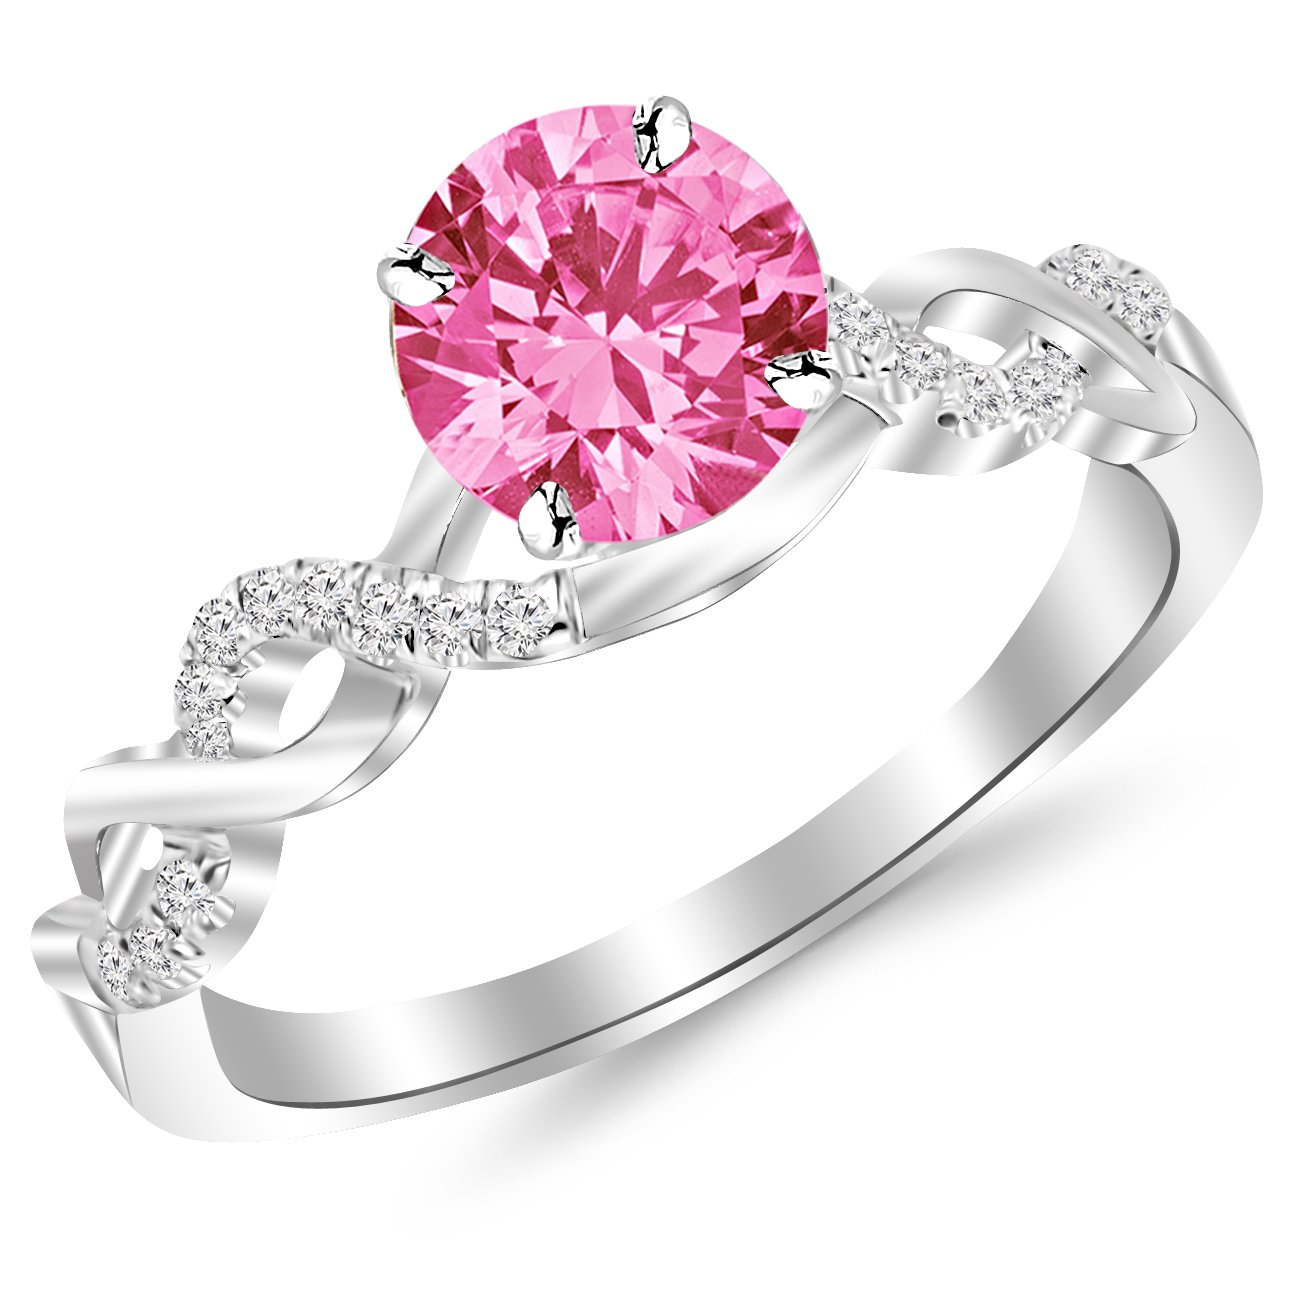 0.63 Carat 14K White Gold Twisting Infinity Gold and Diamond Split Shank Pave Set Diamond Engagement Ring with a 0.5 Carat Natural Pink Sapphire Center (Heirloom Quality)